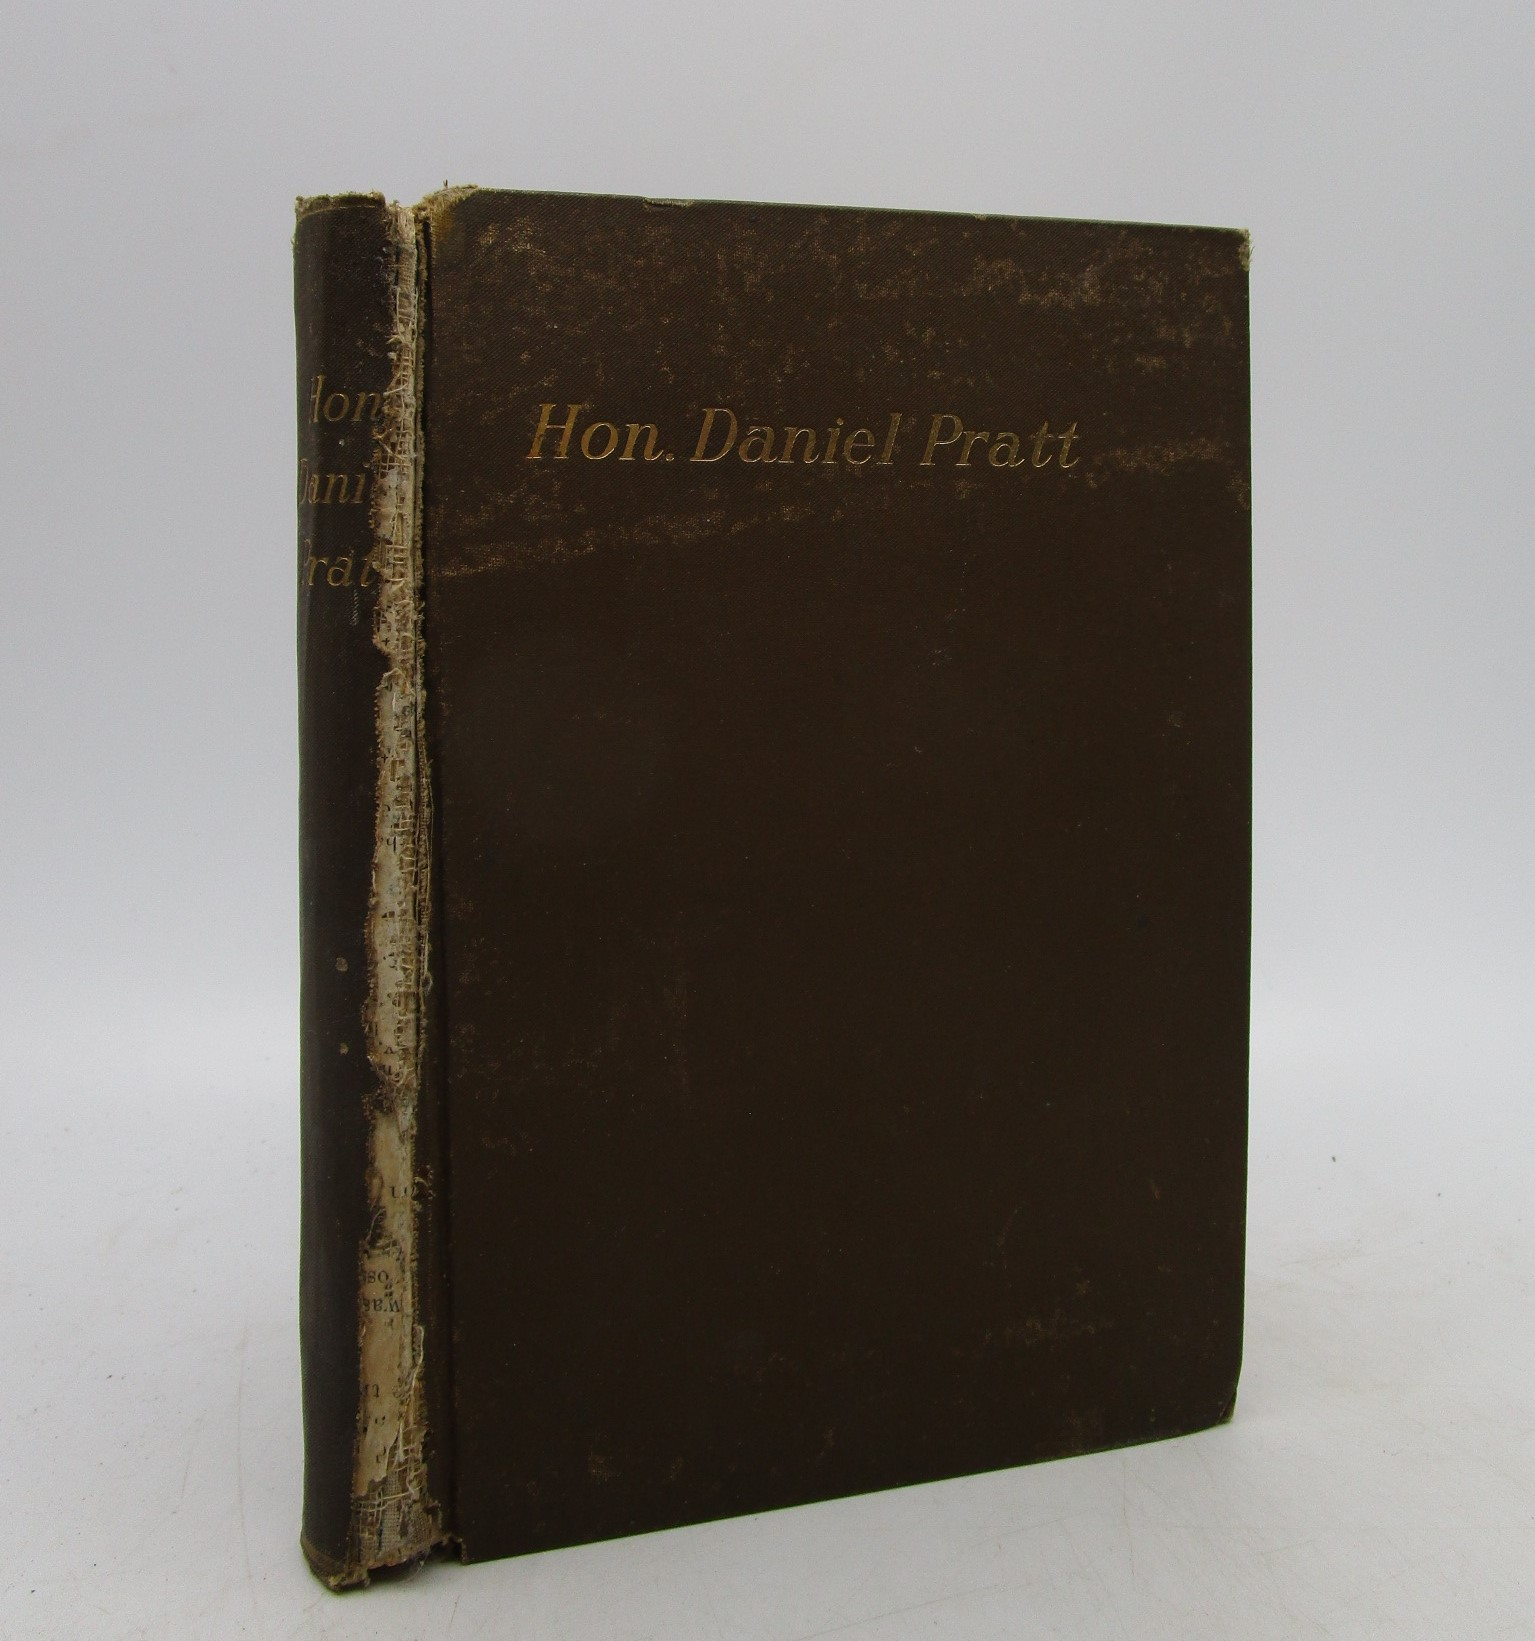 Image for Hon. Daniel Pratt: a Biography, With Eulogies on His Life and Character.